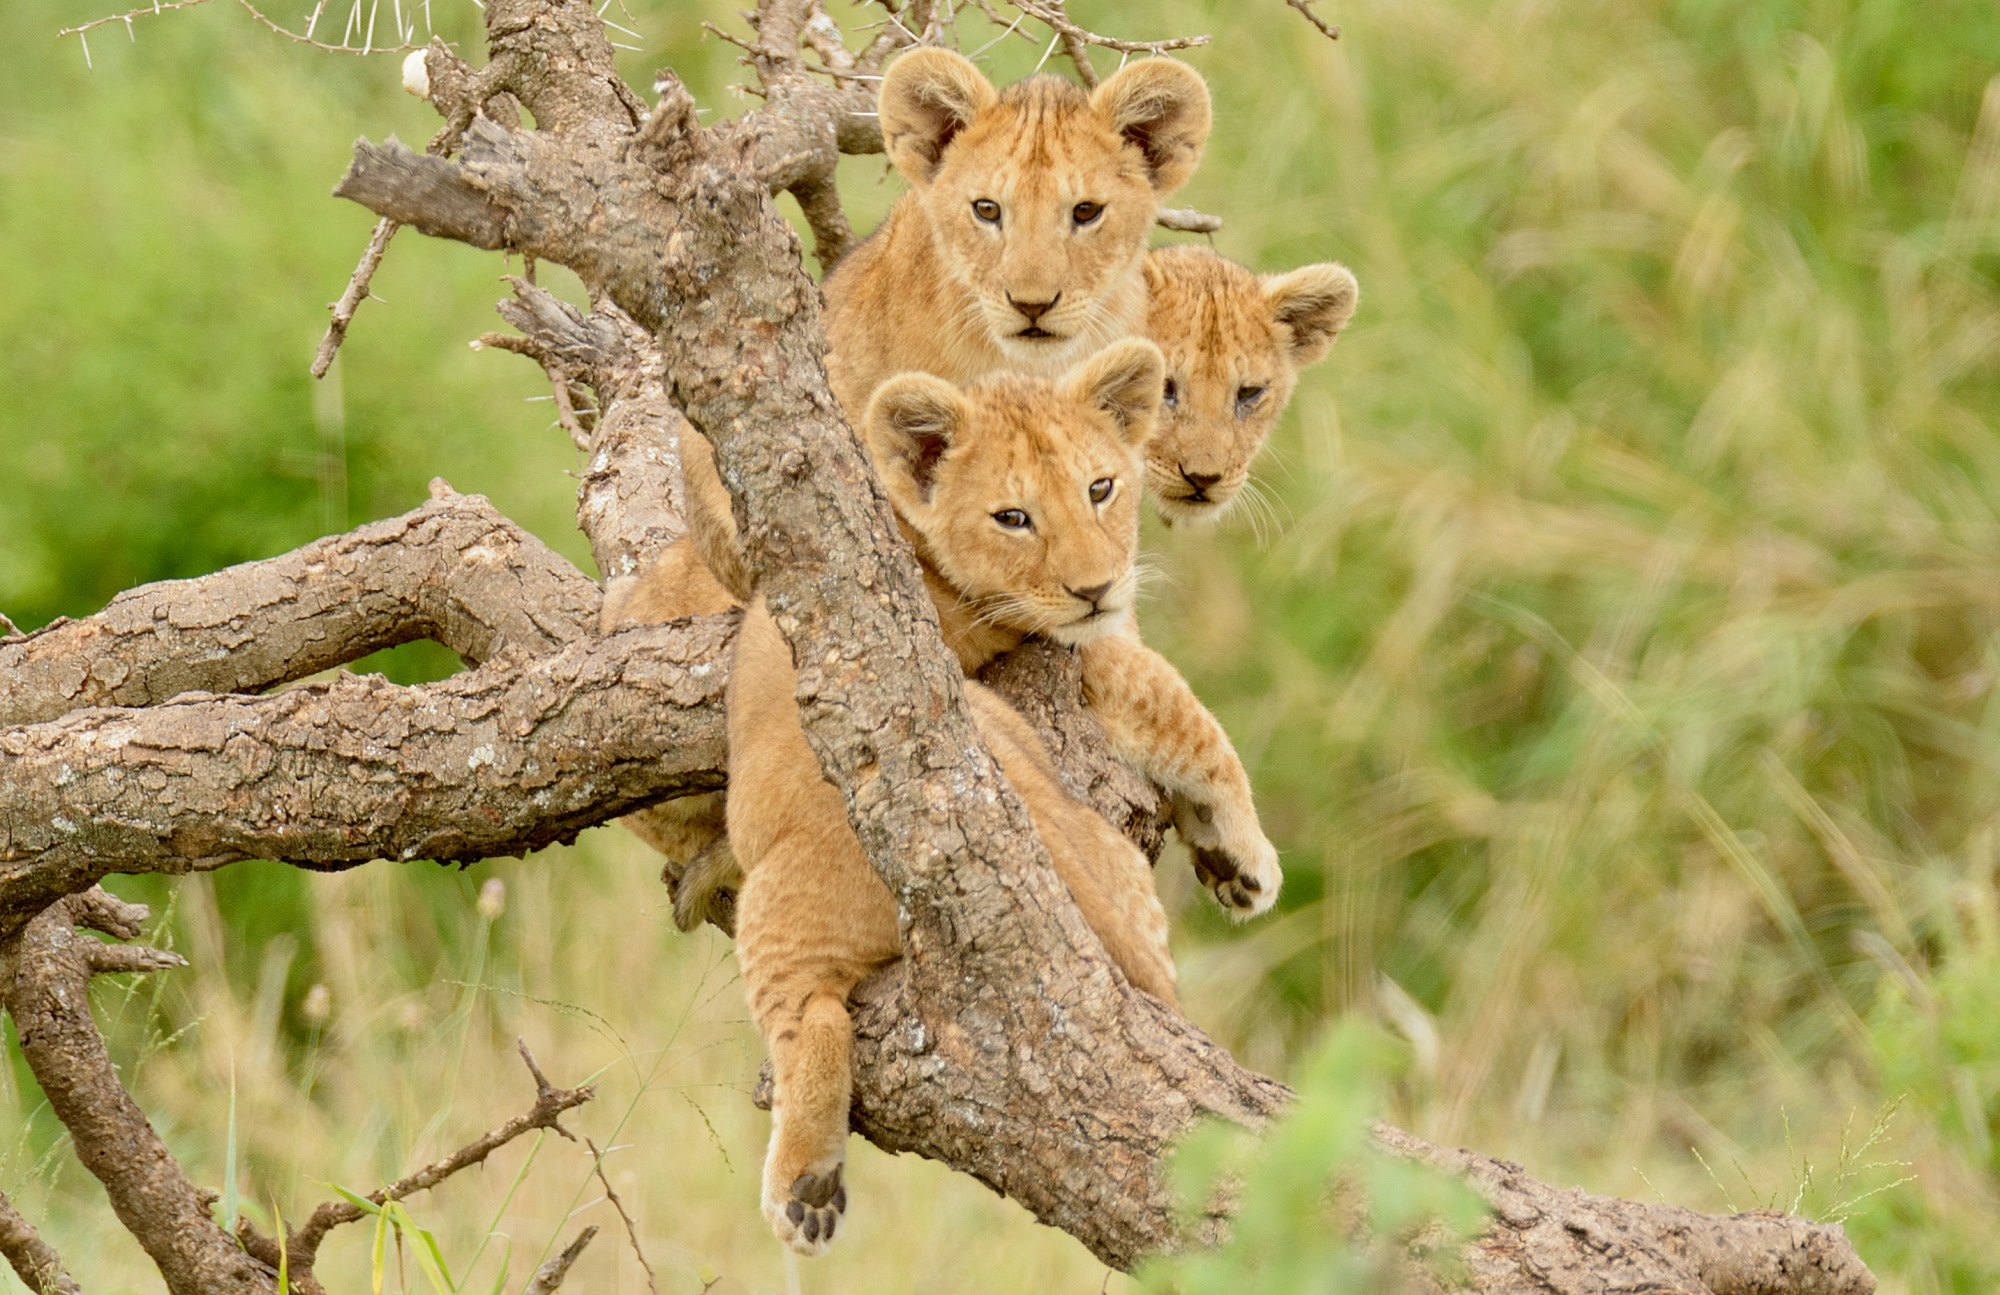 Enchanting Travels Africa Tours - Lion King Safari - a group of lion cubs hanging out in a tree